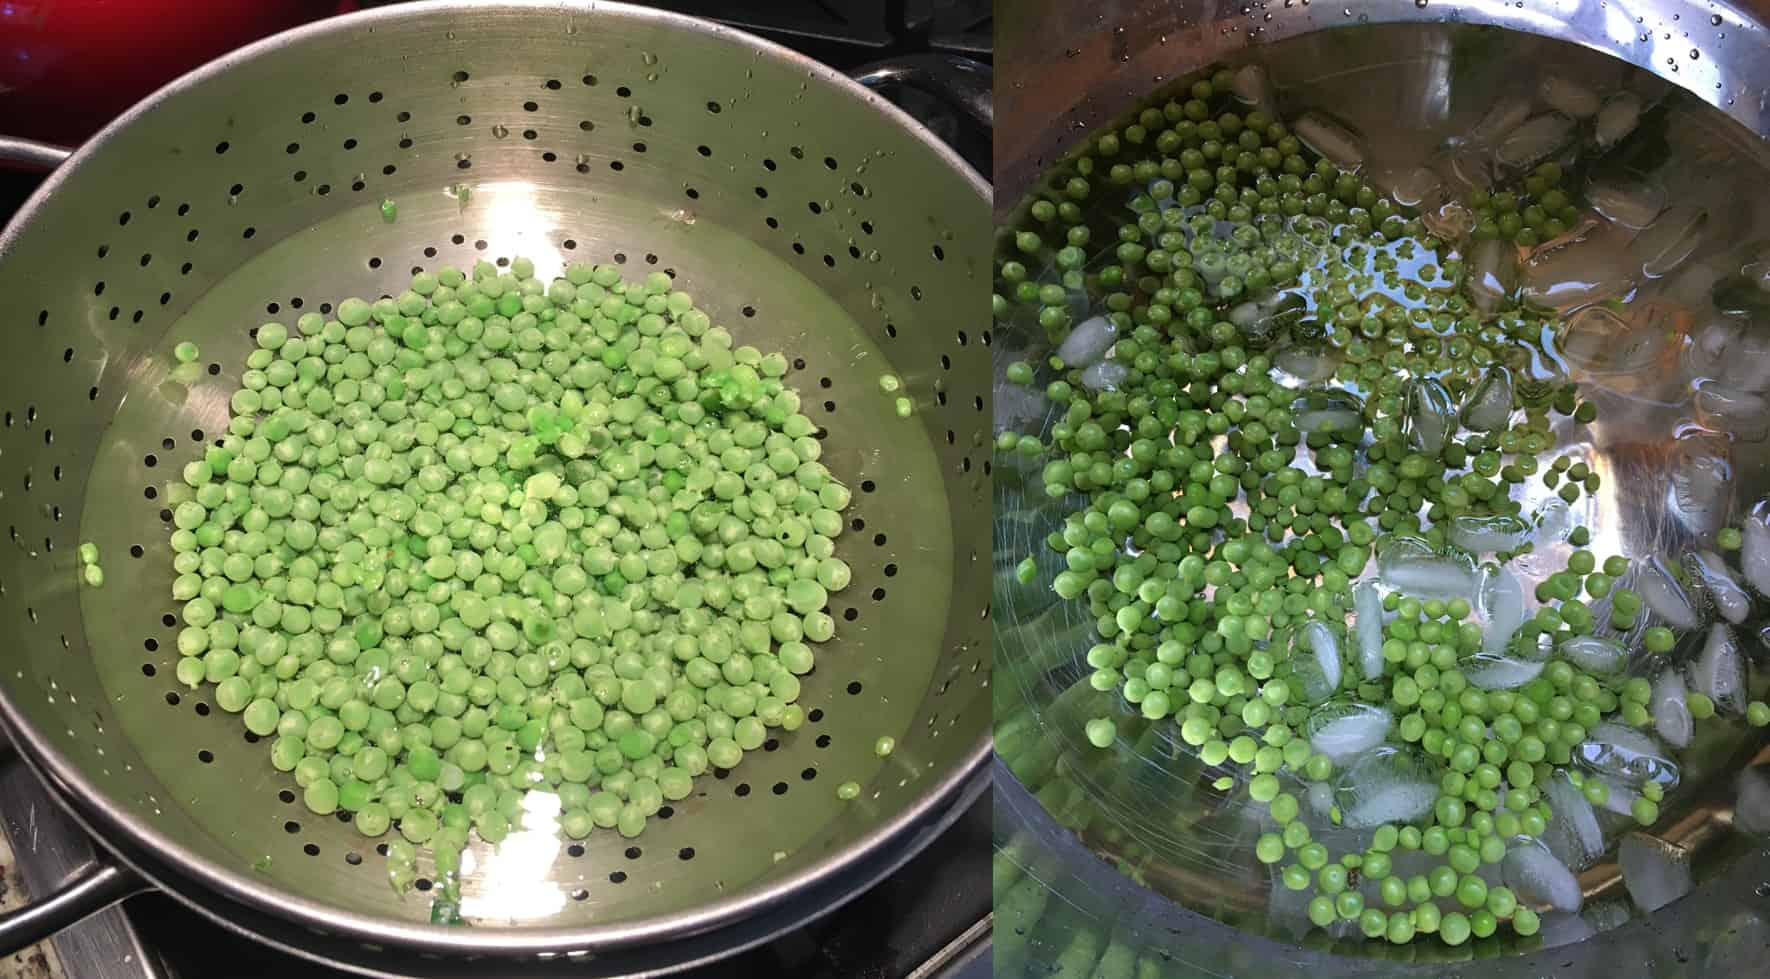 Green peas being blanched and shocked. https://trimazing.com/